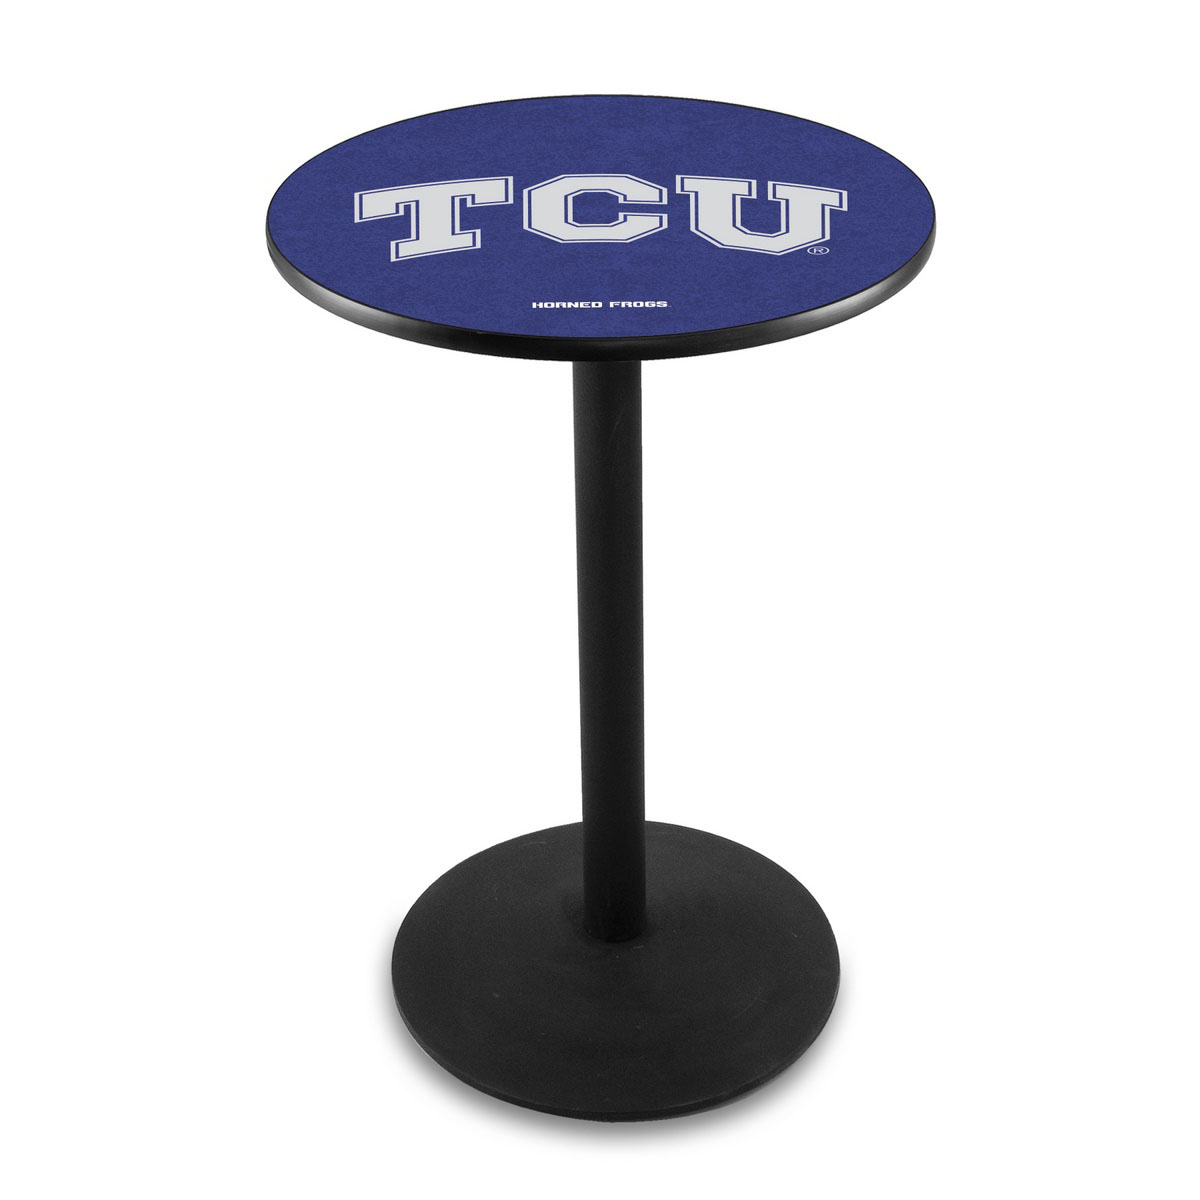 Magnificent Tcu Logo Pub Bar Table Round Stand Product Photo